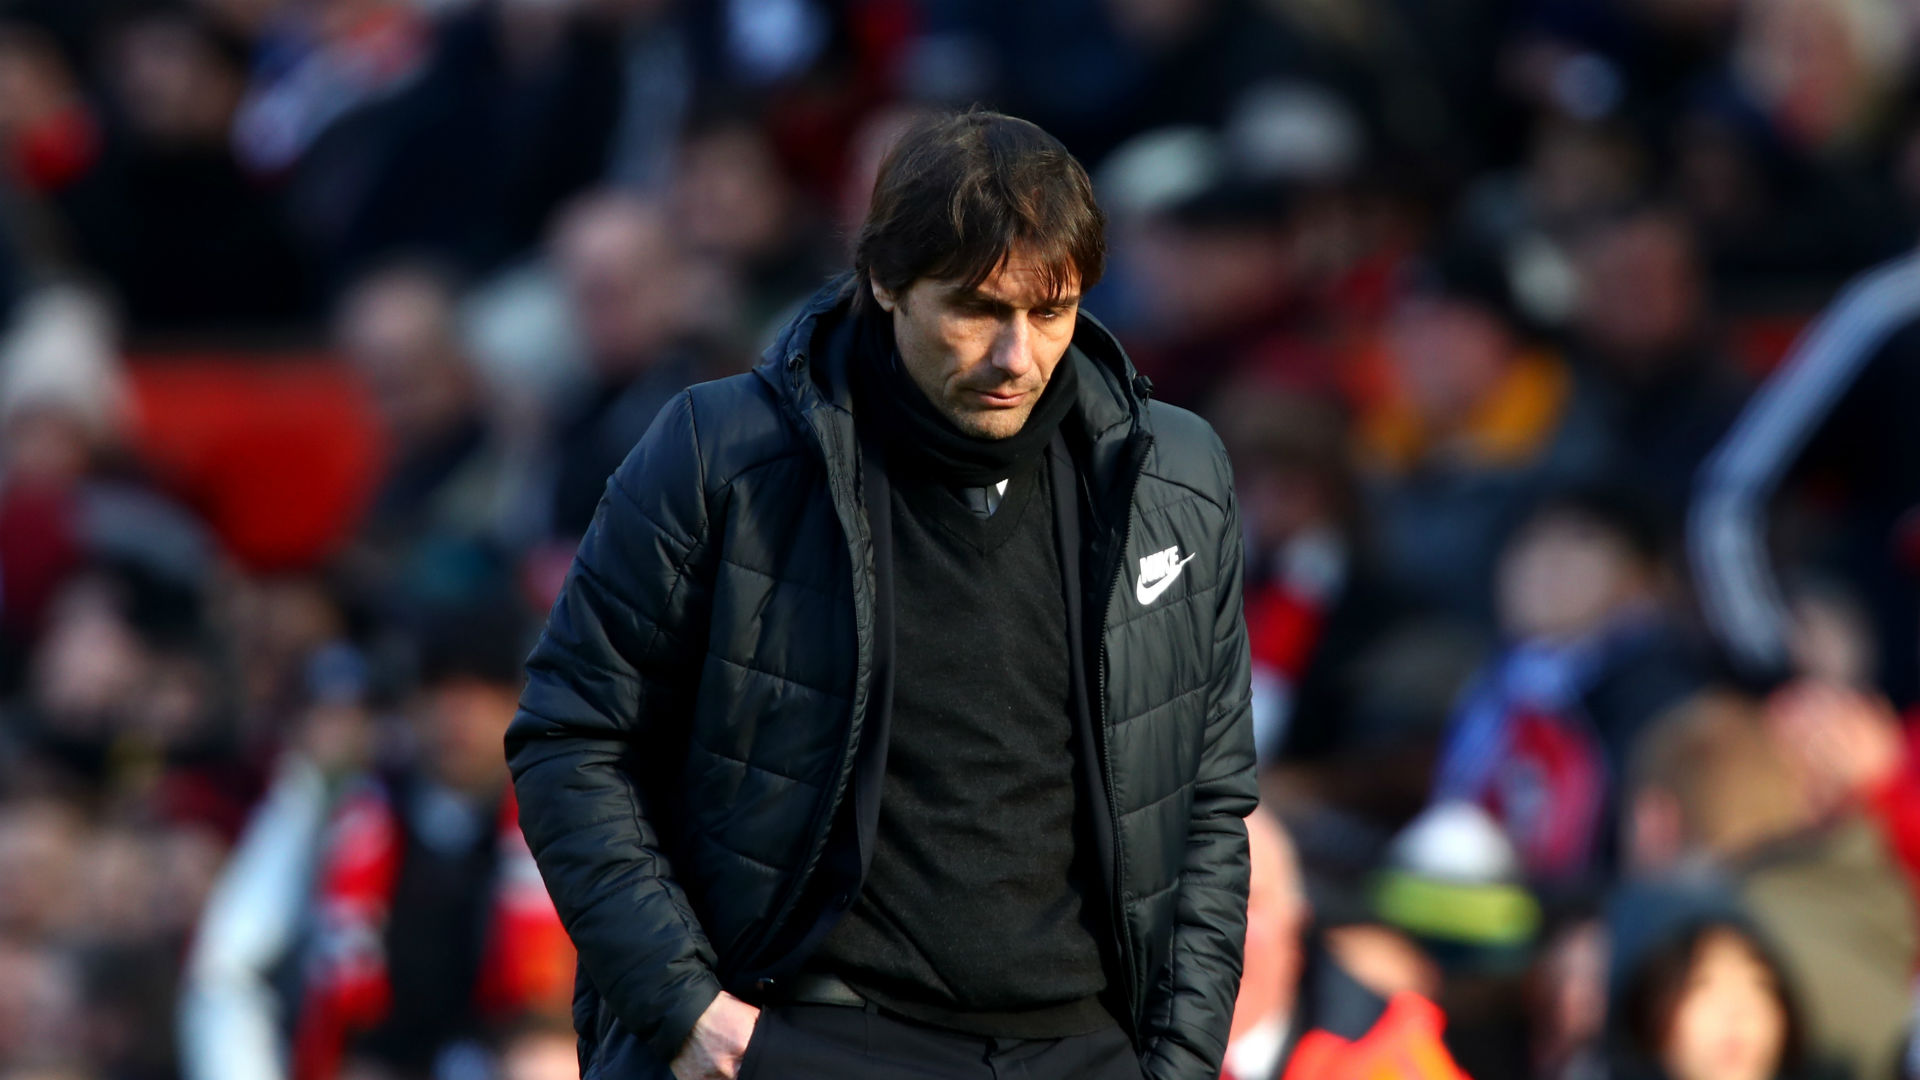 Antonio Conte: Chelsea need to combat Manchester City with tactical plan